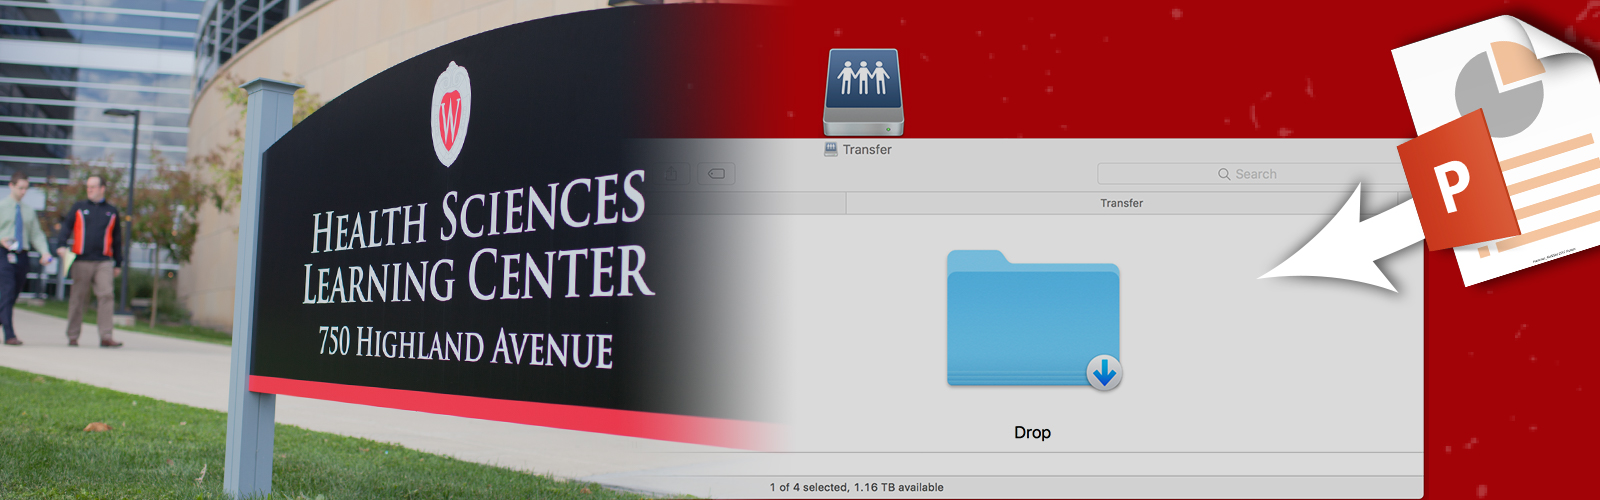 Hero image for 'File Transfer':File on desktop being uploaded to server, also showing entrance to physical office.